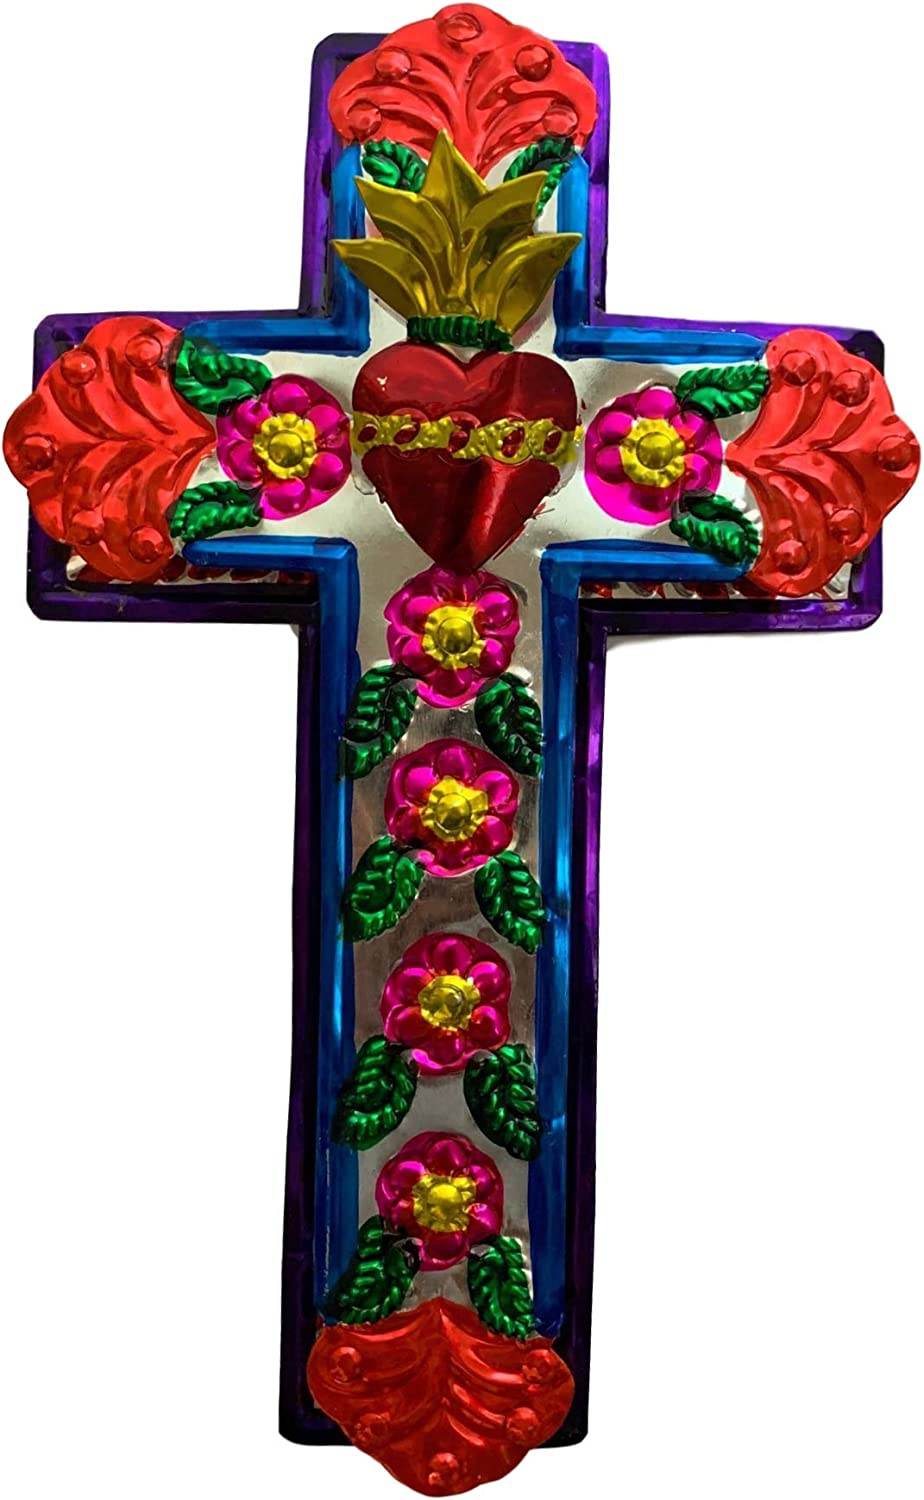 "Casa Fiesta Designs Embossed Tin Cross - Mexican Folk Art Wall Decor - Handmade in Mexico - Milagros Charm - Sacred Heart Ornament - Mexican Art - 11"" x 7"" Cruz de Metal (L)"